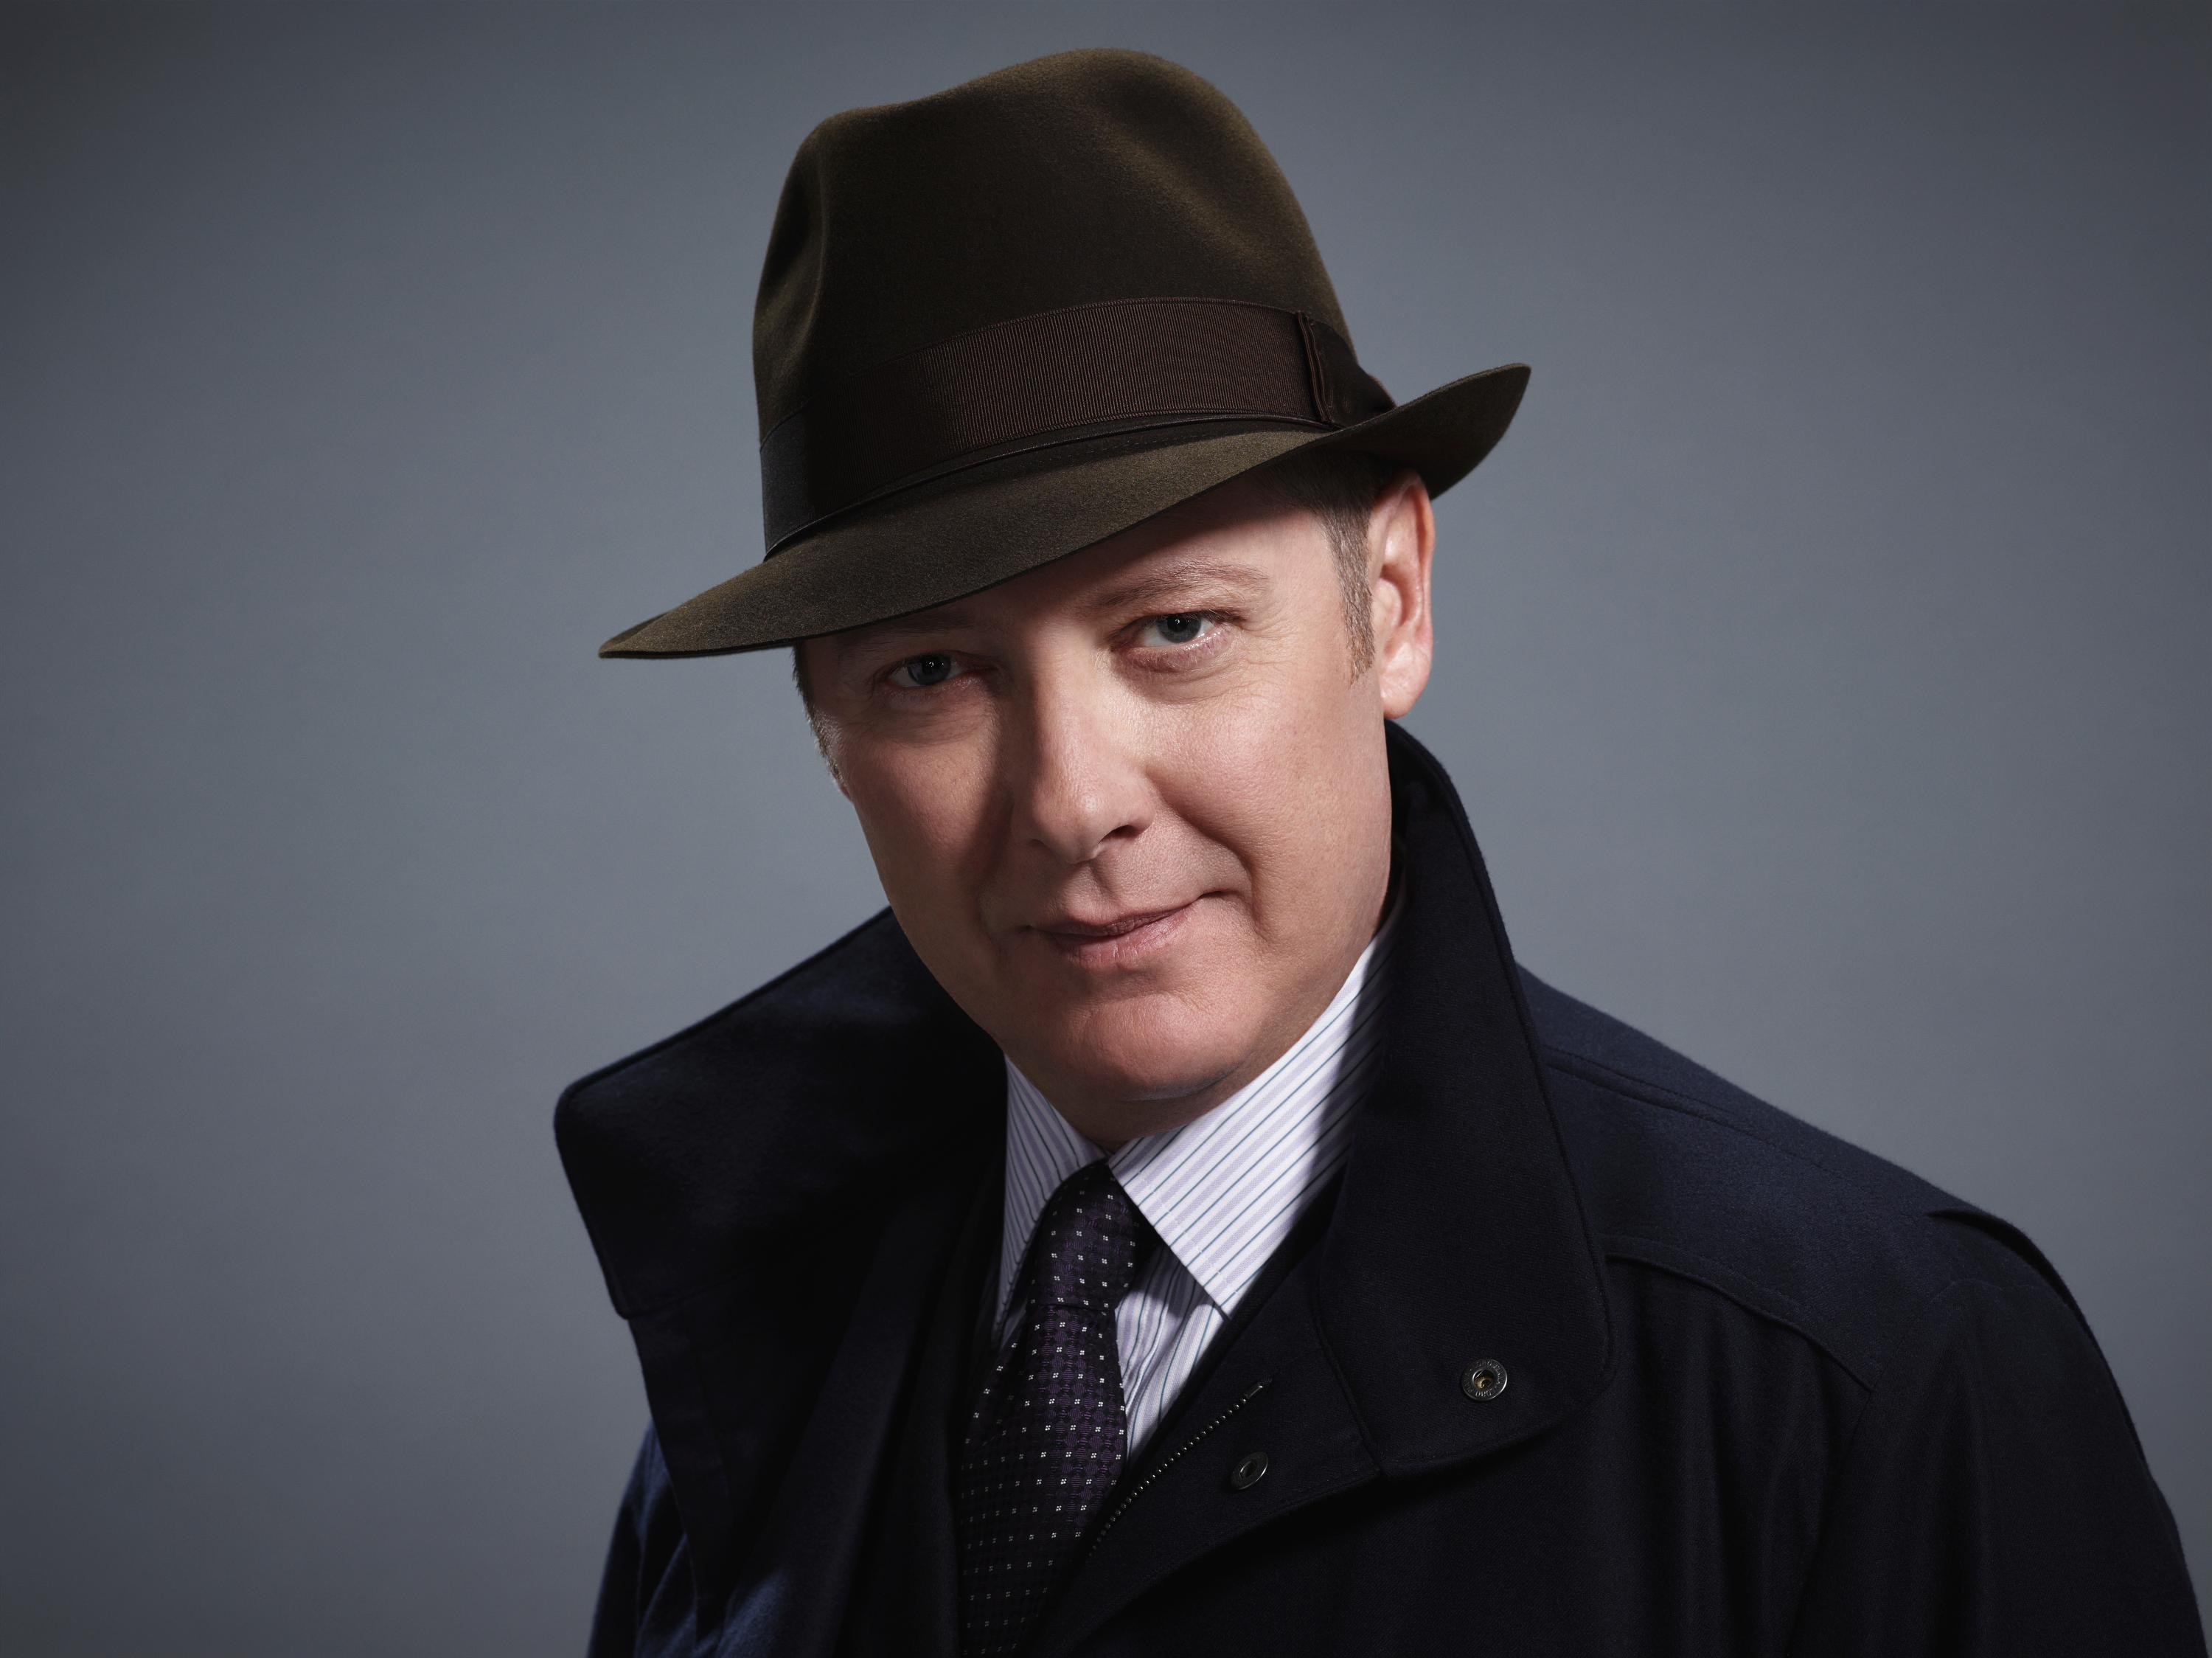 Image result for photos of oprah James Spader in The Blacklist.